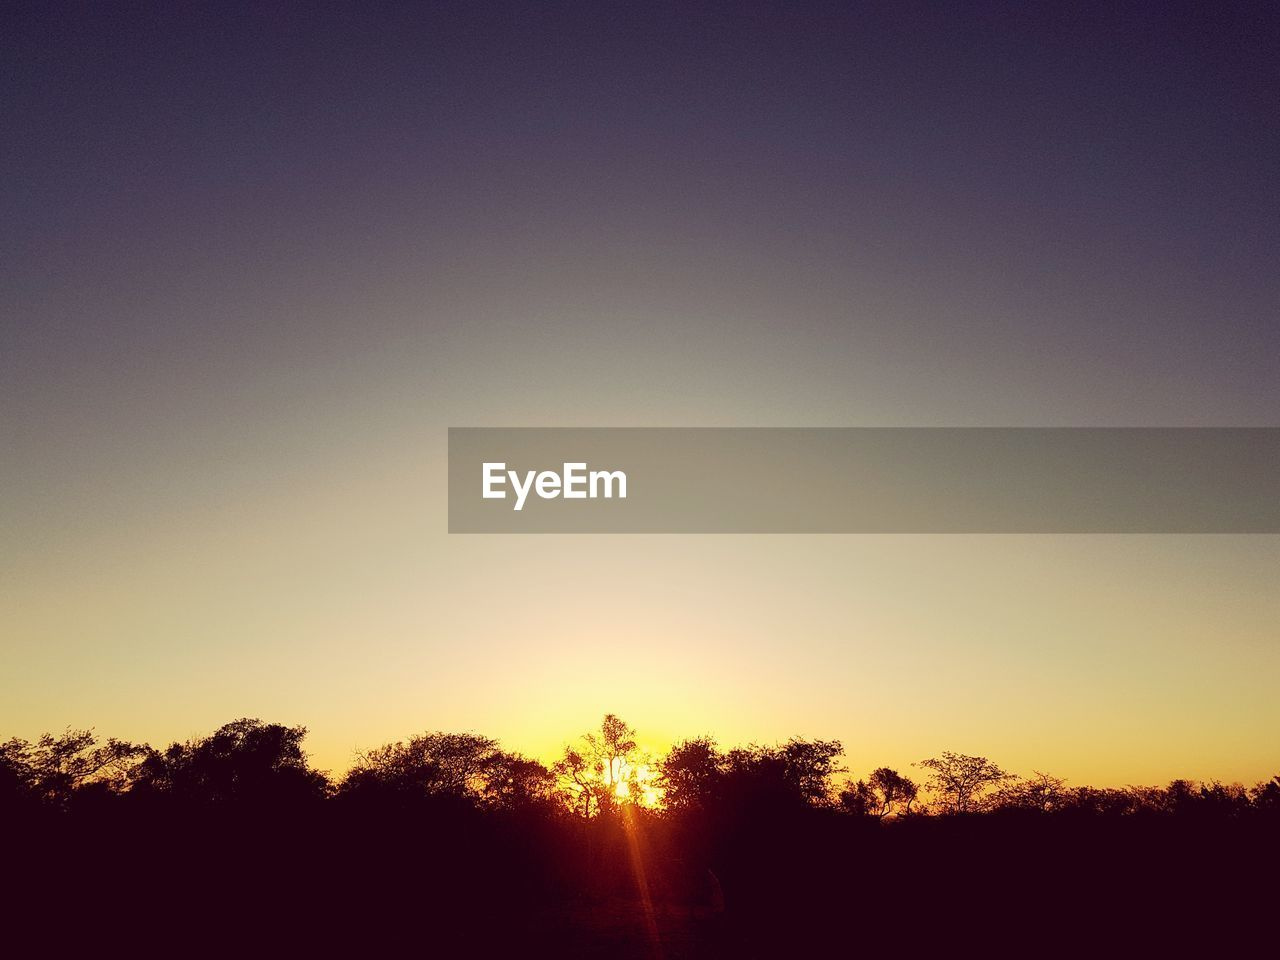 sky, tranquility, beauty in nature, tranquil scene, tree, scenics - nature, silhouette, plant, sunset, no people, nature, copy space, clear sky, sunlight, environment, outdoors, landscape, idyllic, orange color, land